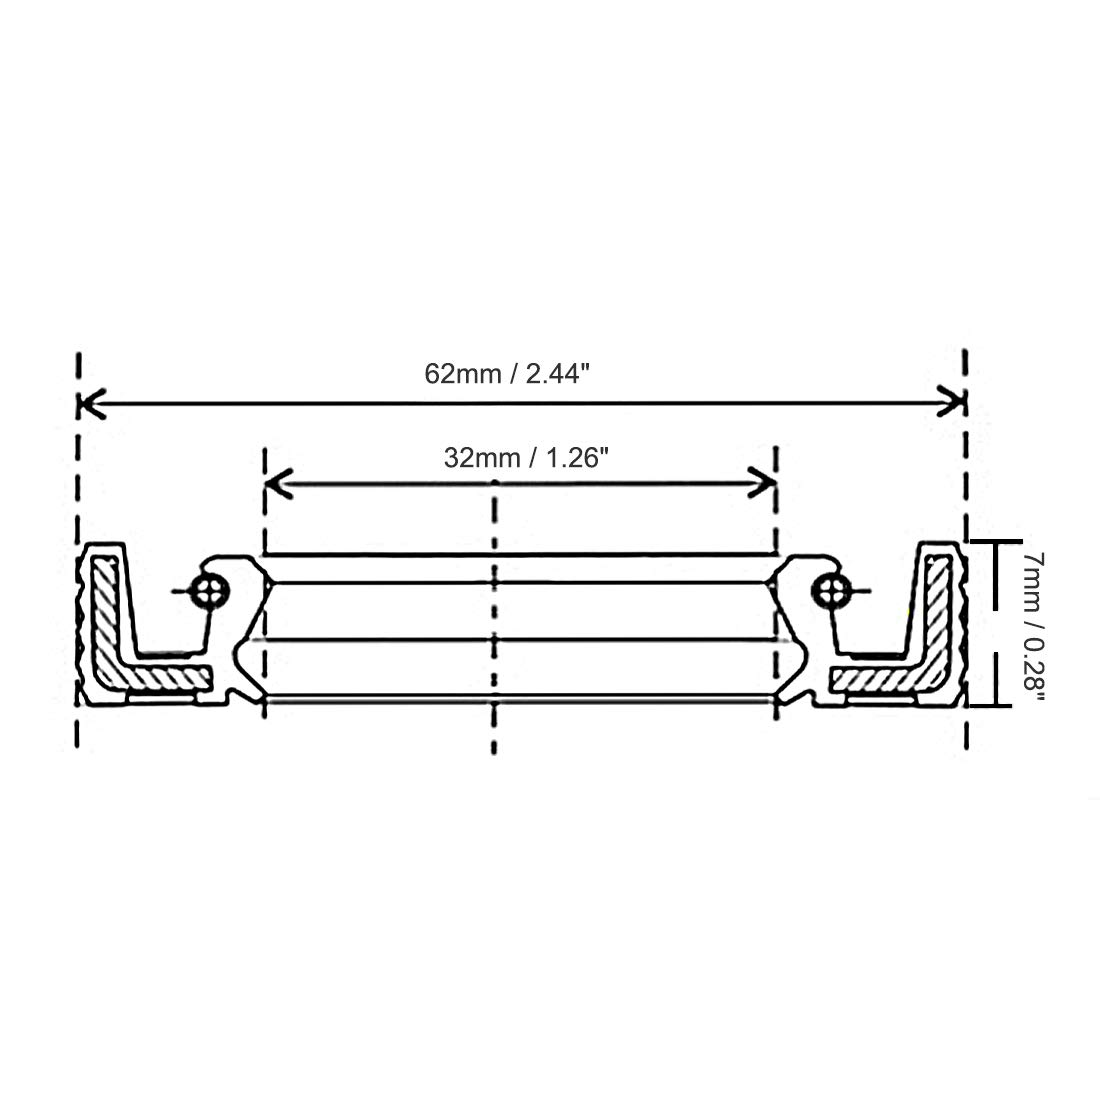 Uxcell Nbr Tc 25mm X 35mm 7mm Metal Spring Double Lip Oil Shaft Wiring Diagram A12042800ux0137 Seal